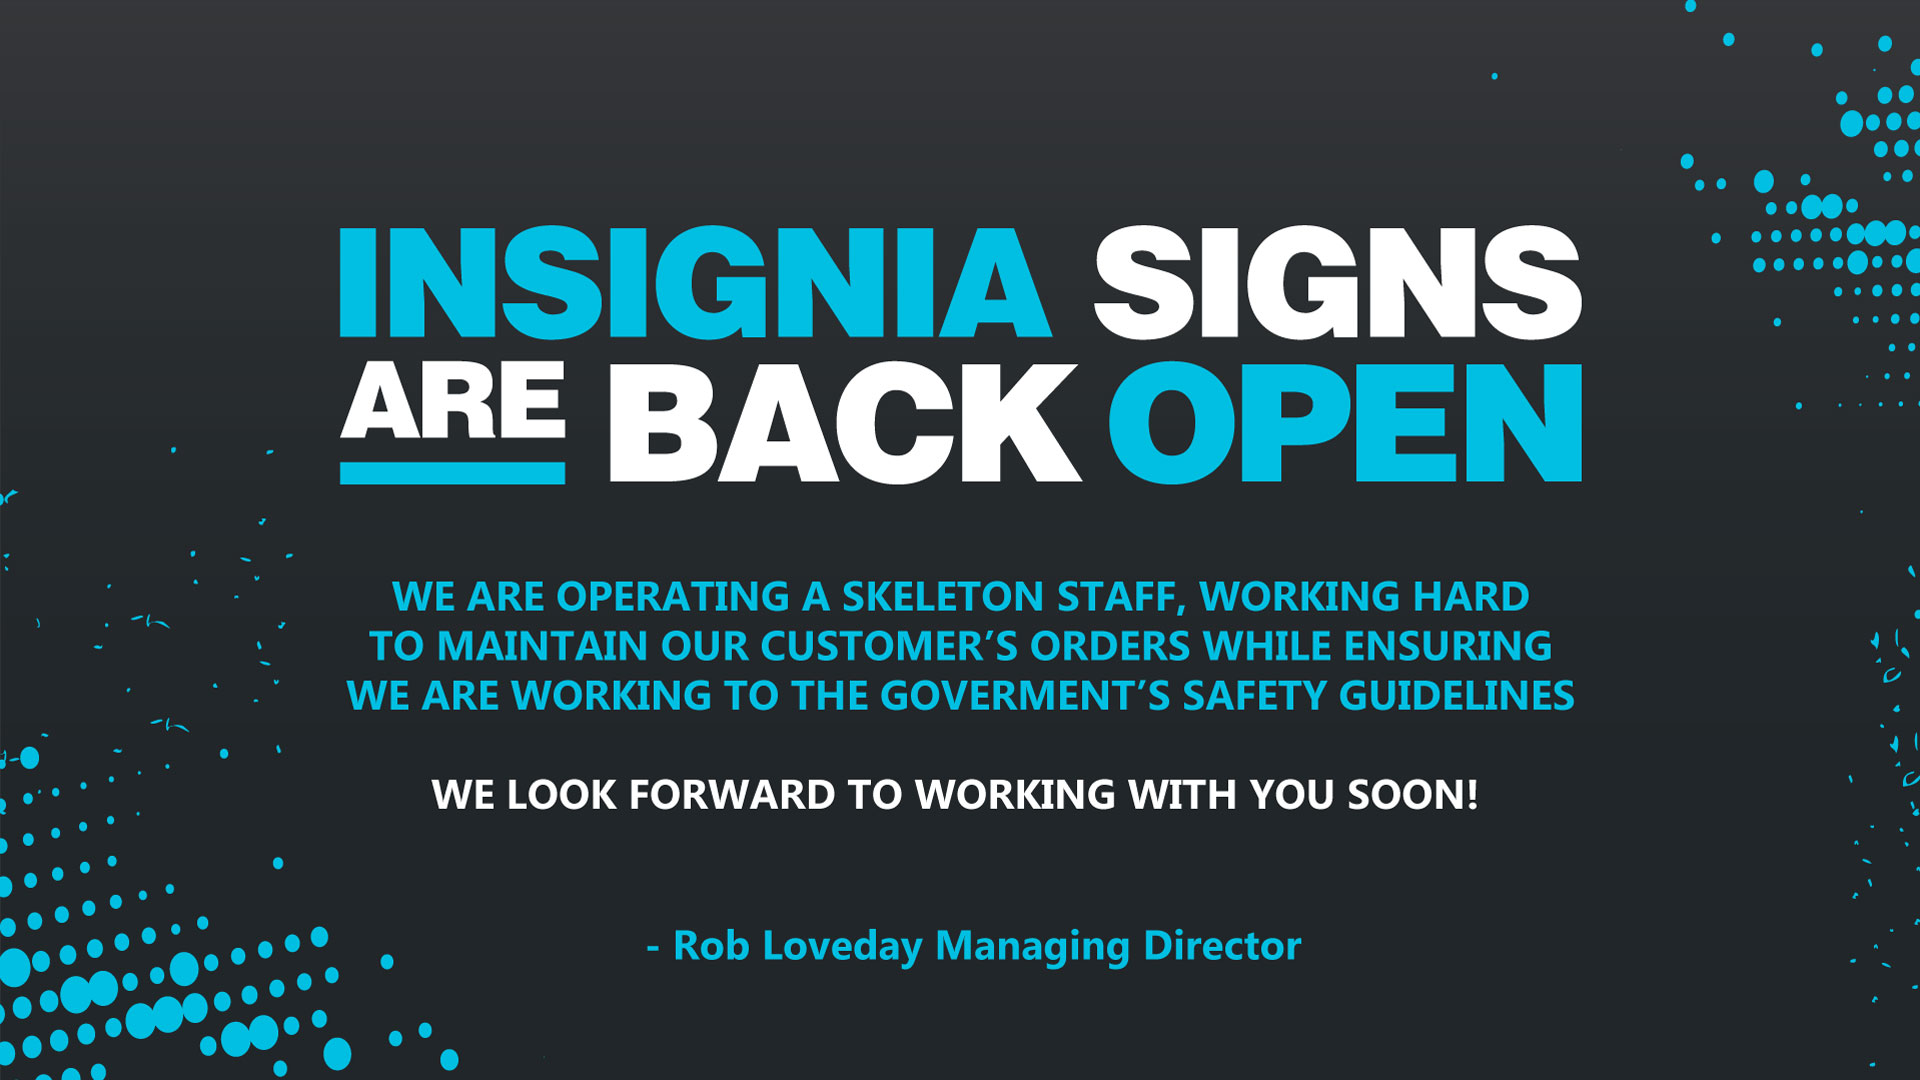 Insignia Signs are back open